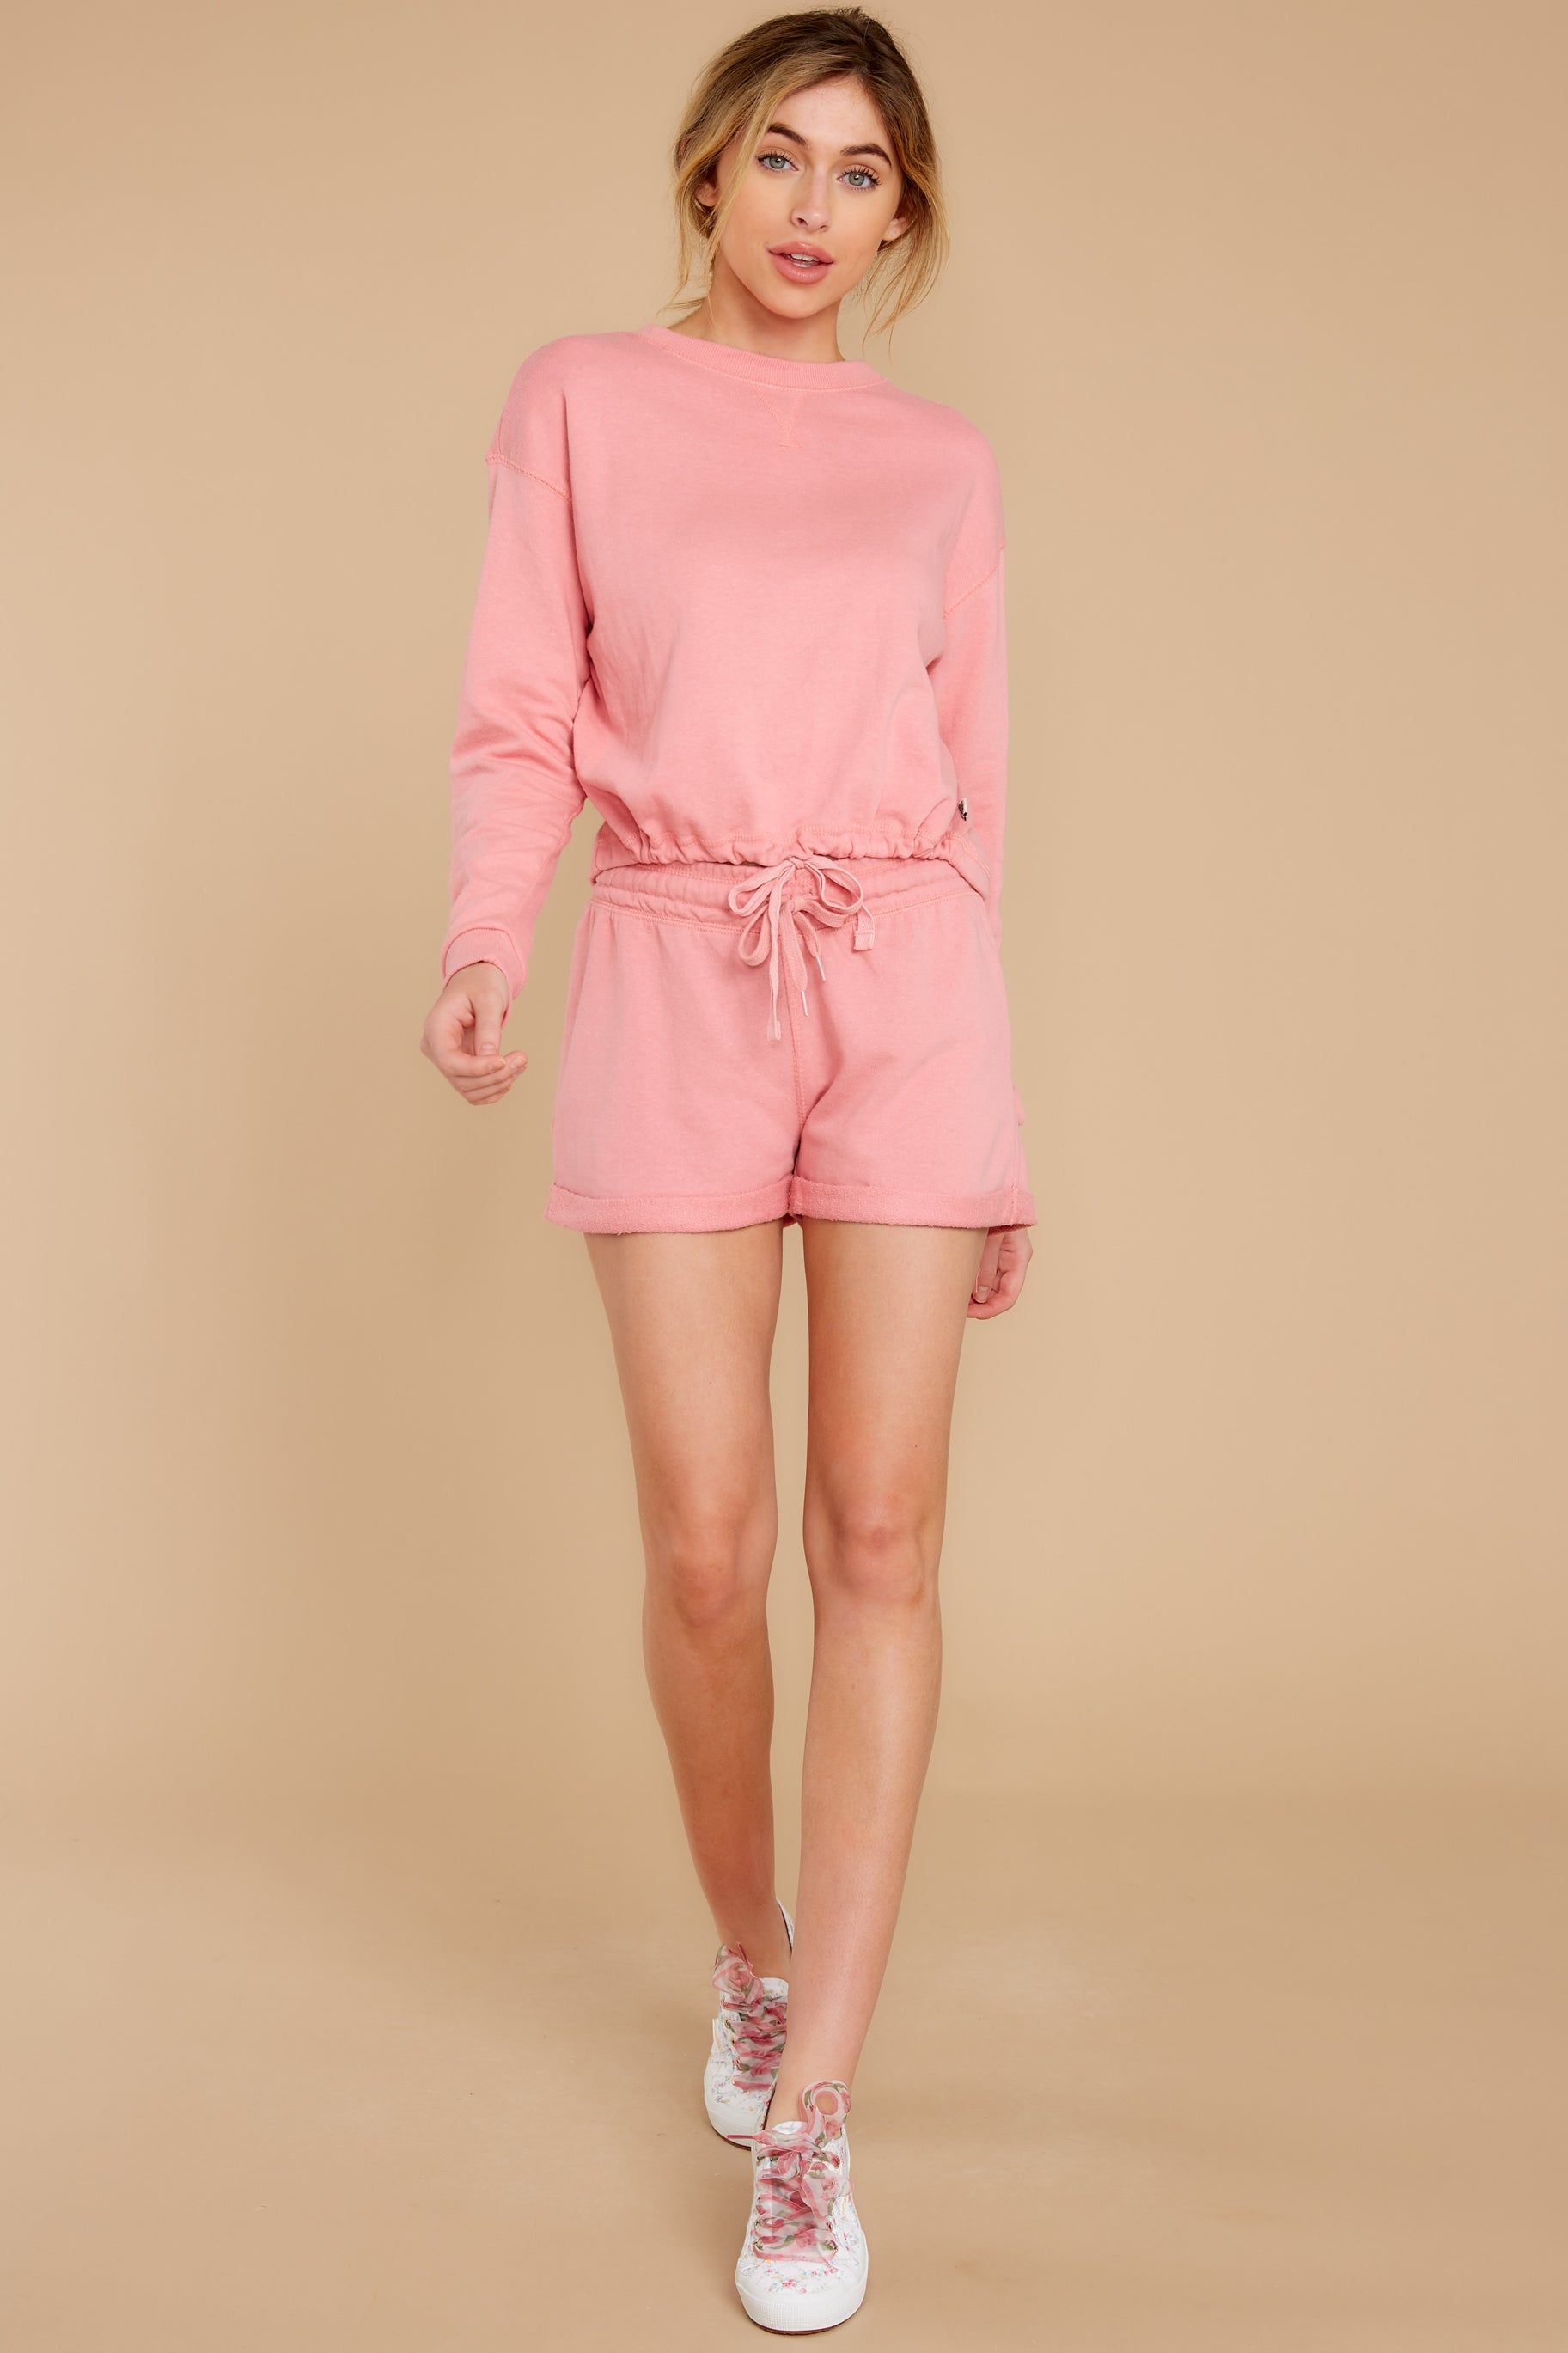 2 Cozy As Can Be Rose Pink Sweatshirt at reddress.com